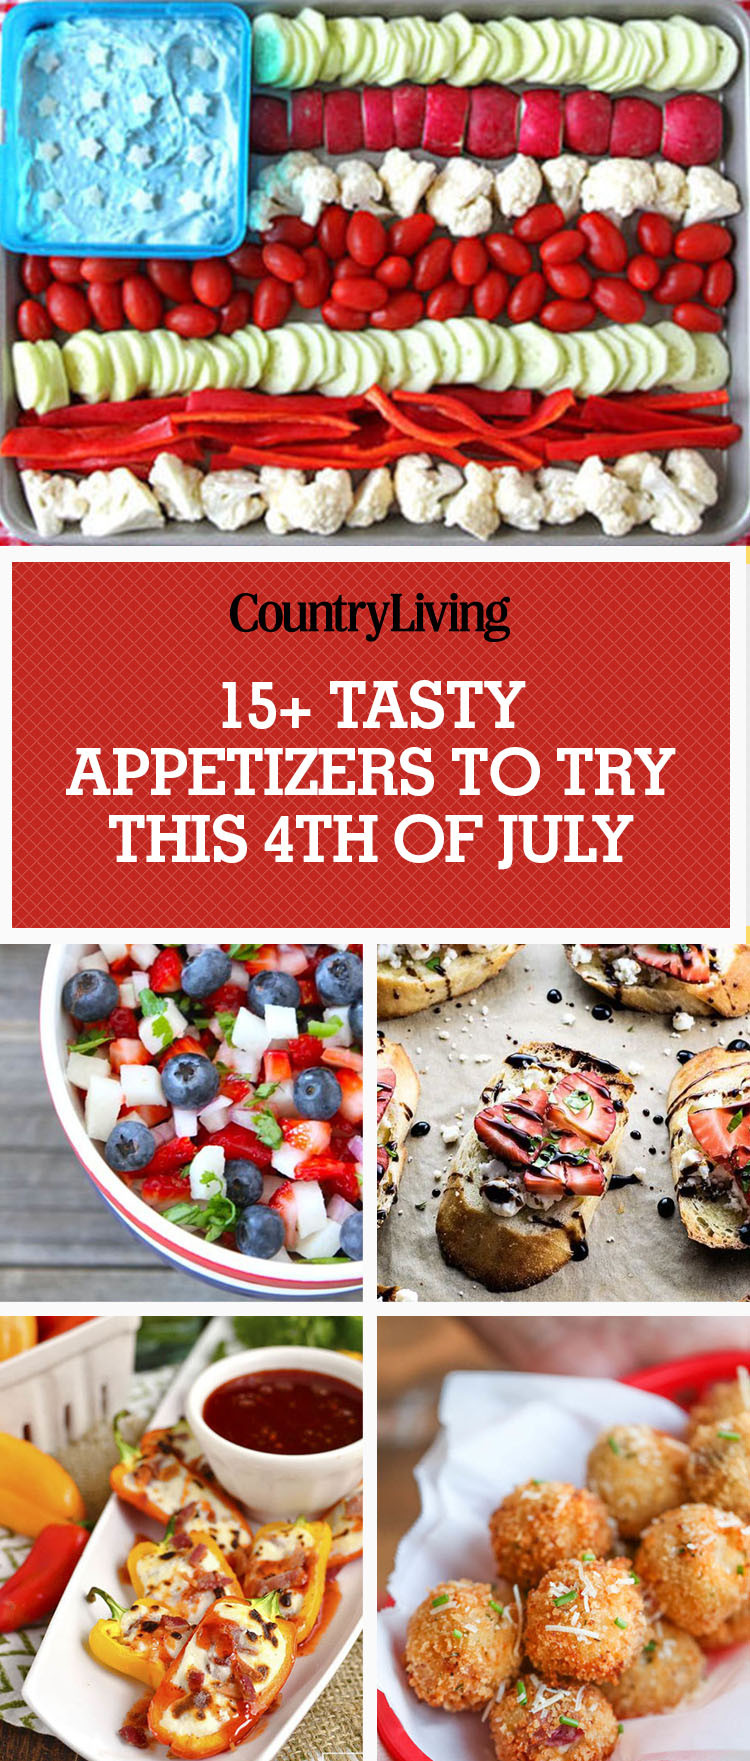 4Th Of July Party Appetizers  17 Easy 4th of July Appetizers Best Recipes for Fourth